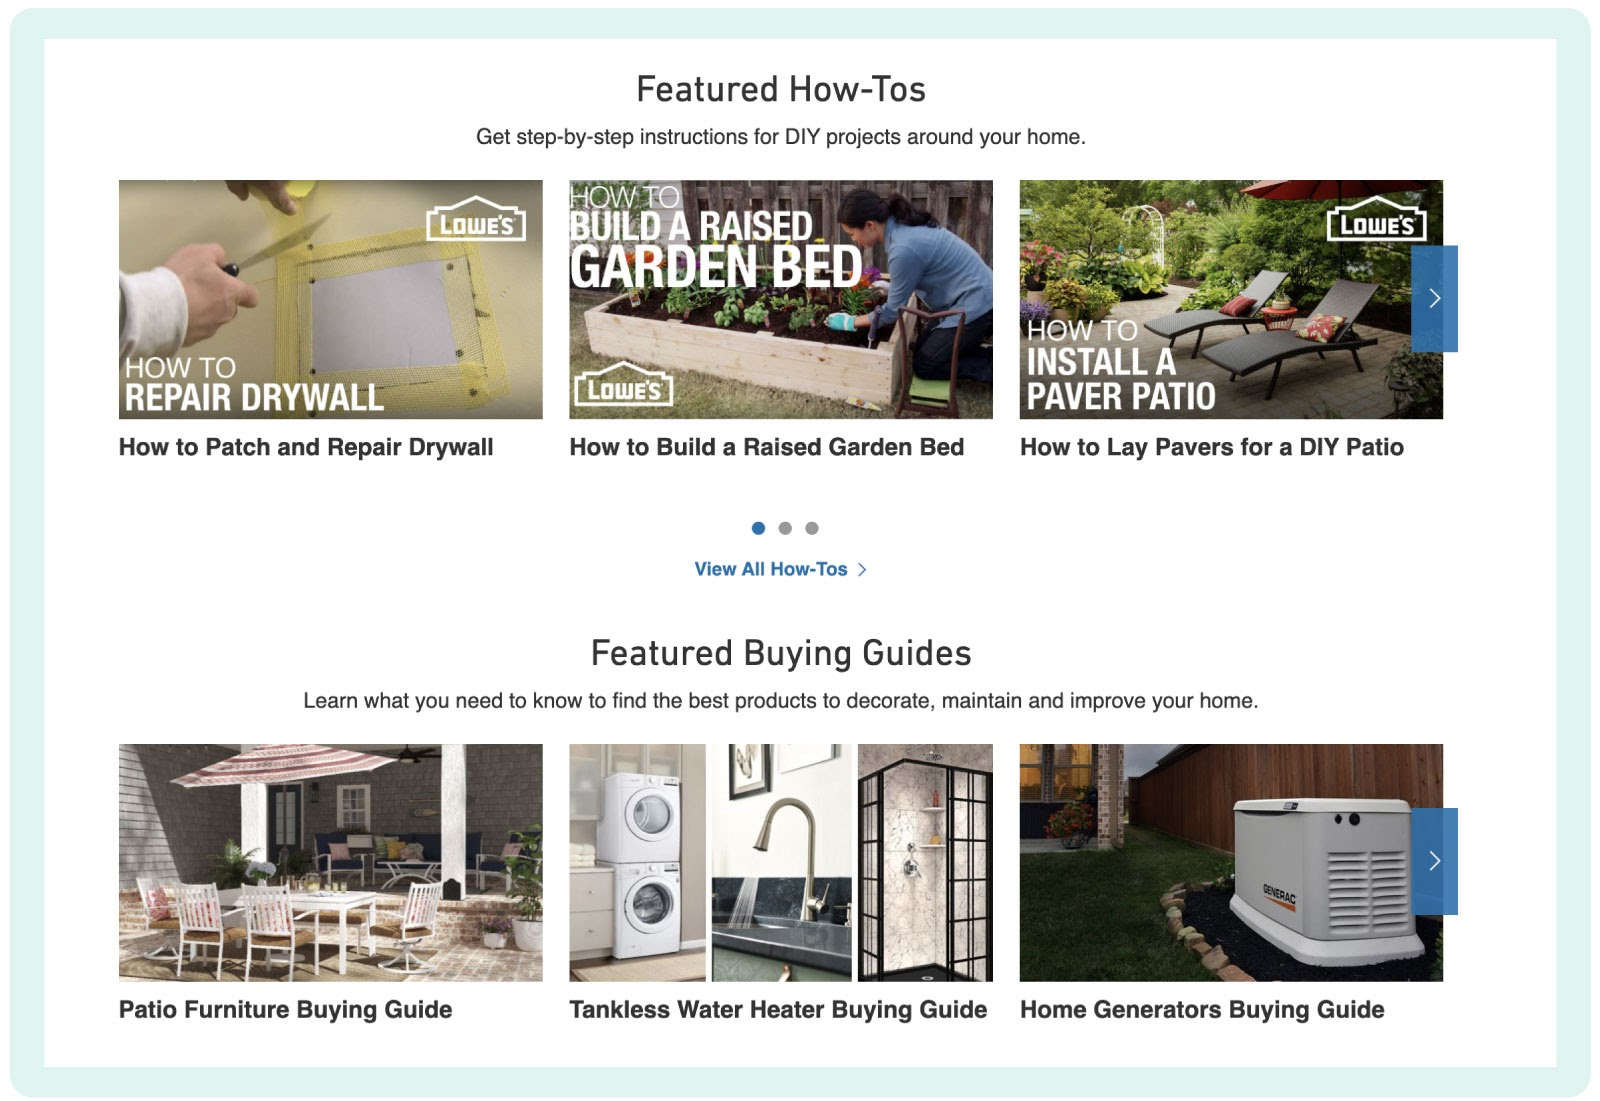 Lowe's DIY projects and ideas content databse